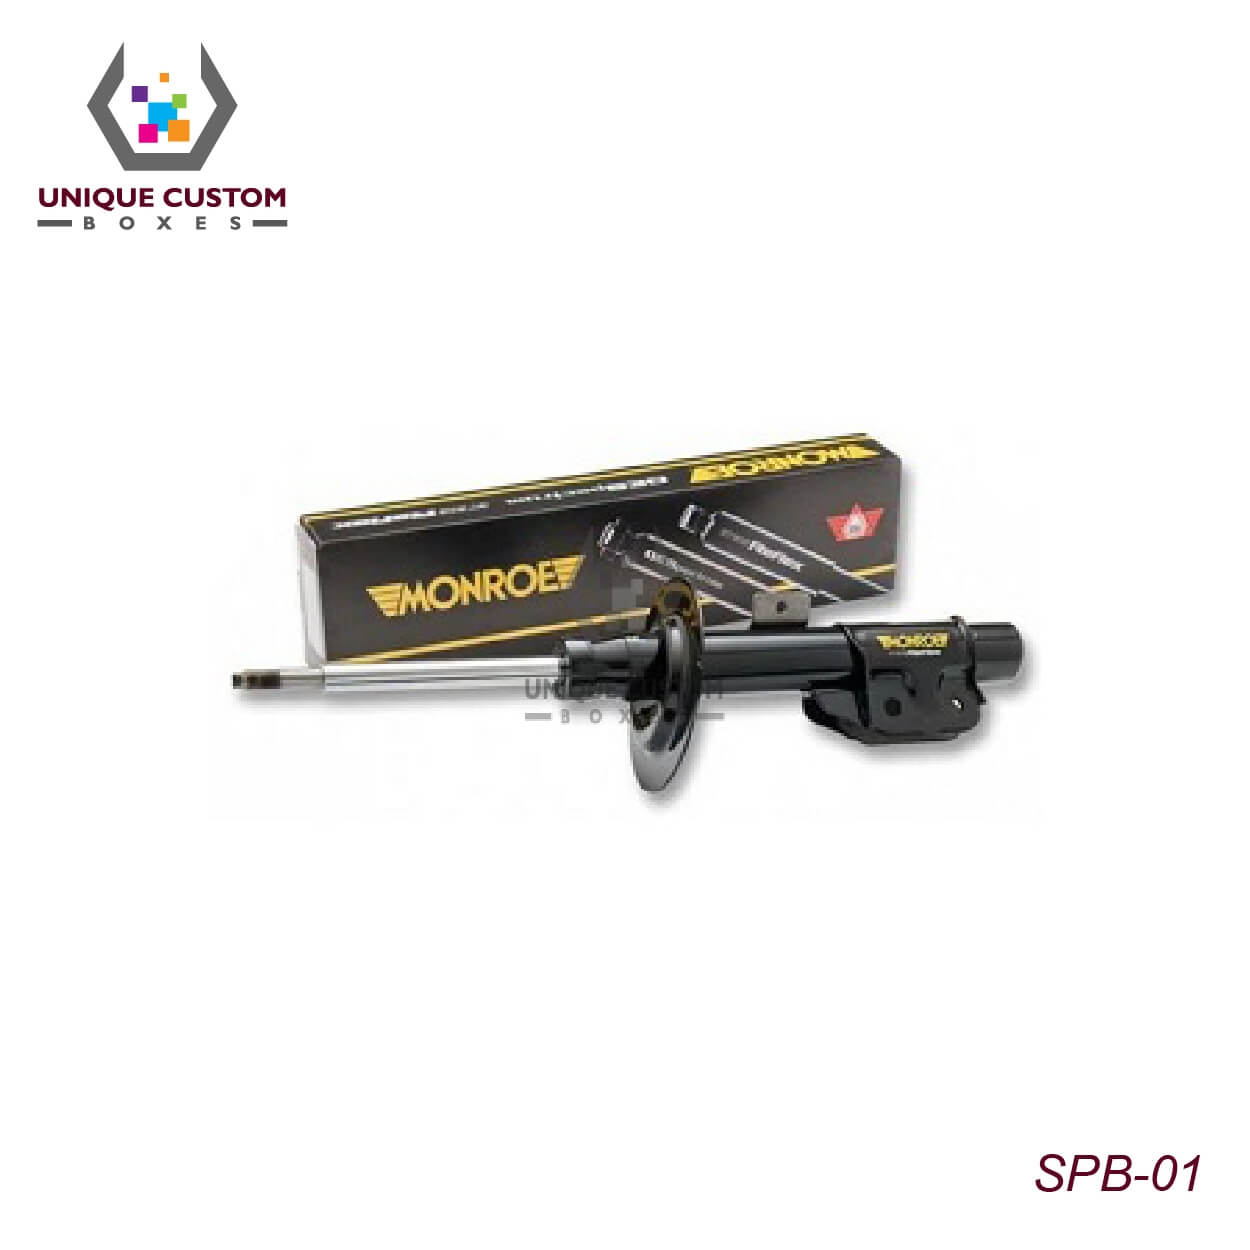 Shock Absorber Boxes-1